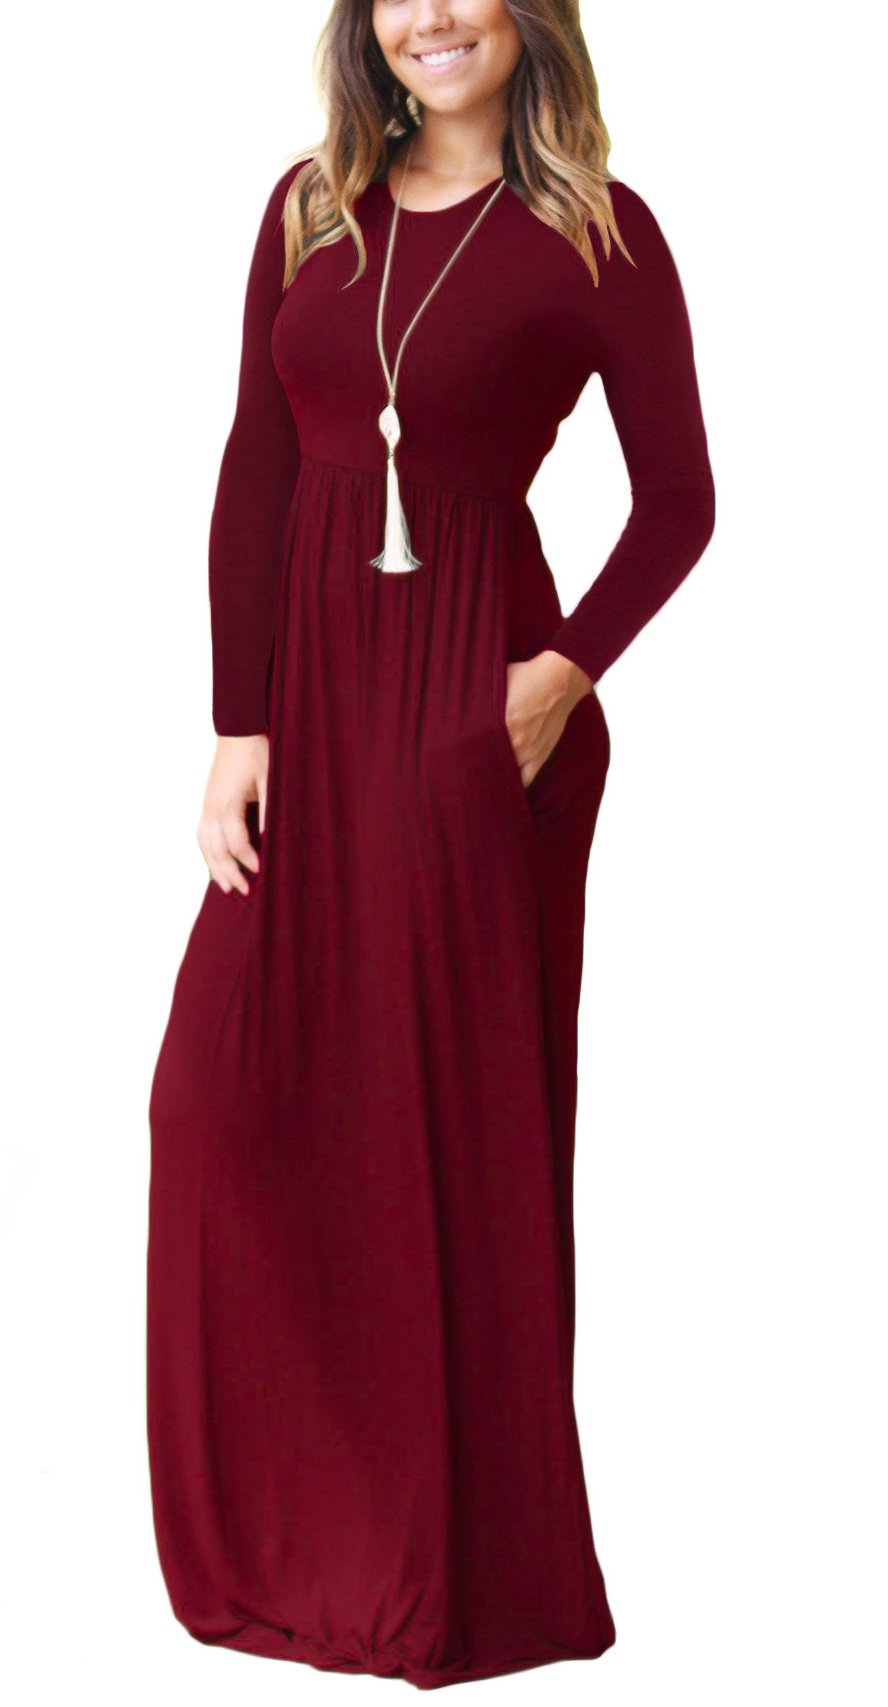 Women's Casual Long Sleeve Long Maxi Tunic Dresses Wine Red Small - wiihuu